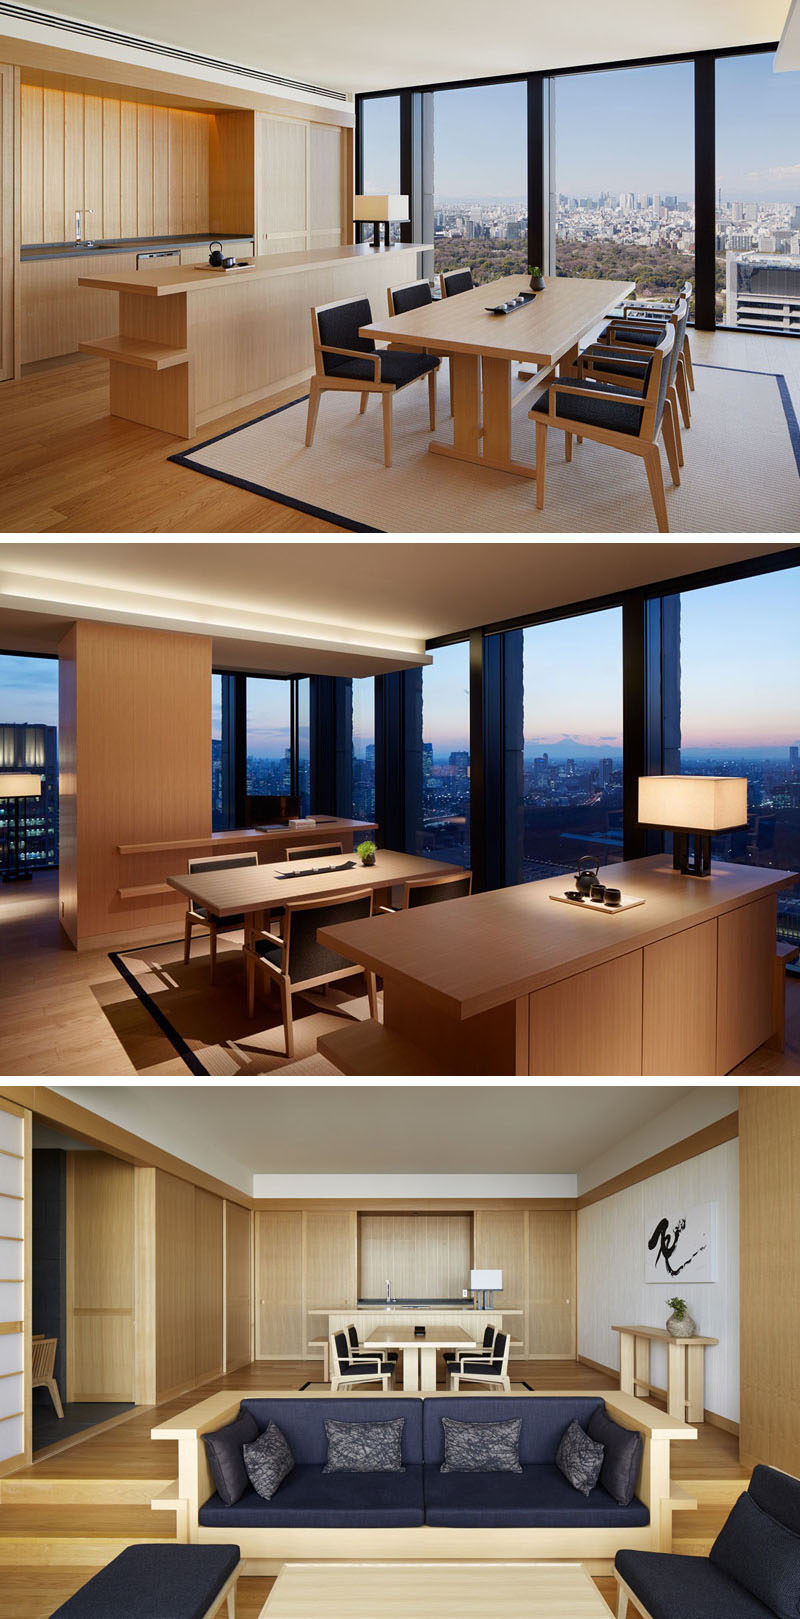 How To Mix Contemporary Interior Design With Elements Of